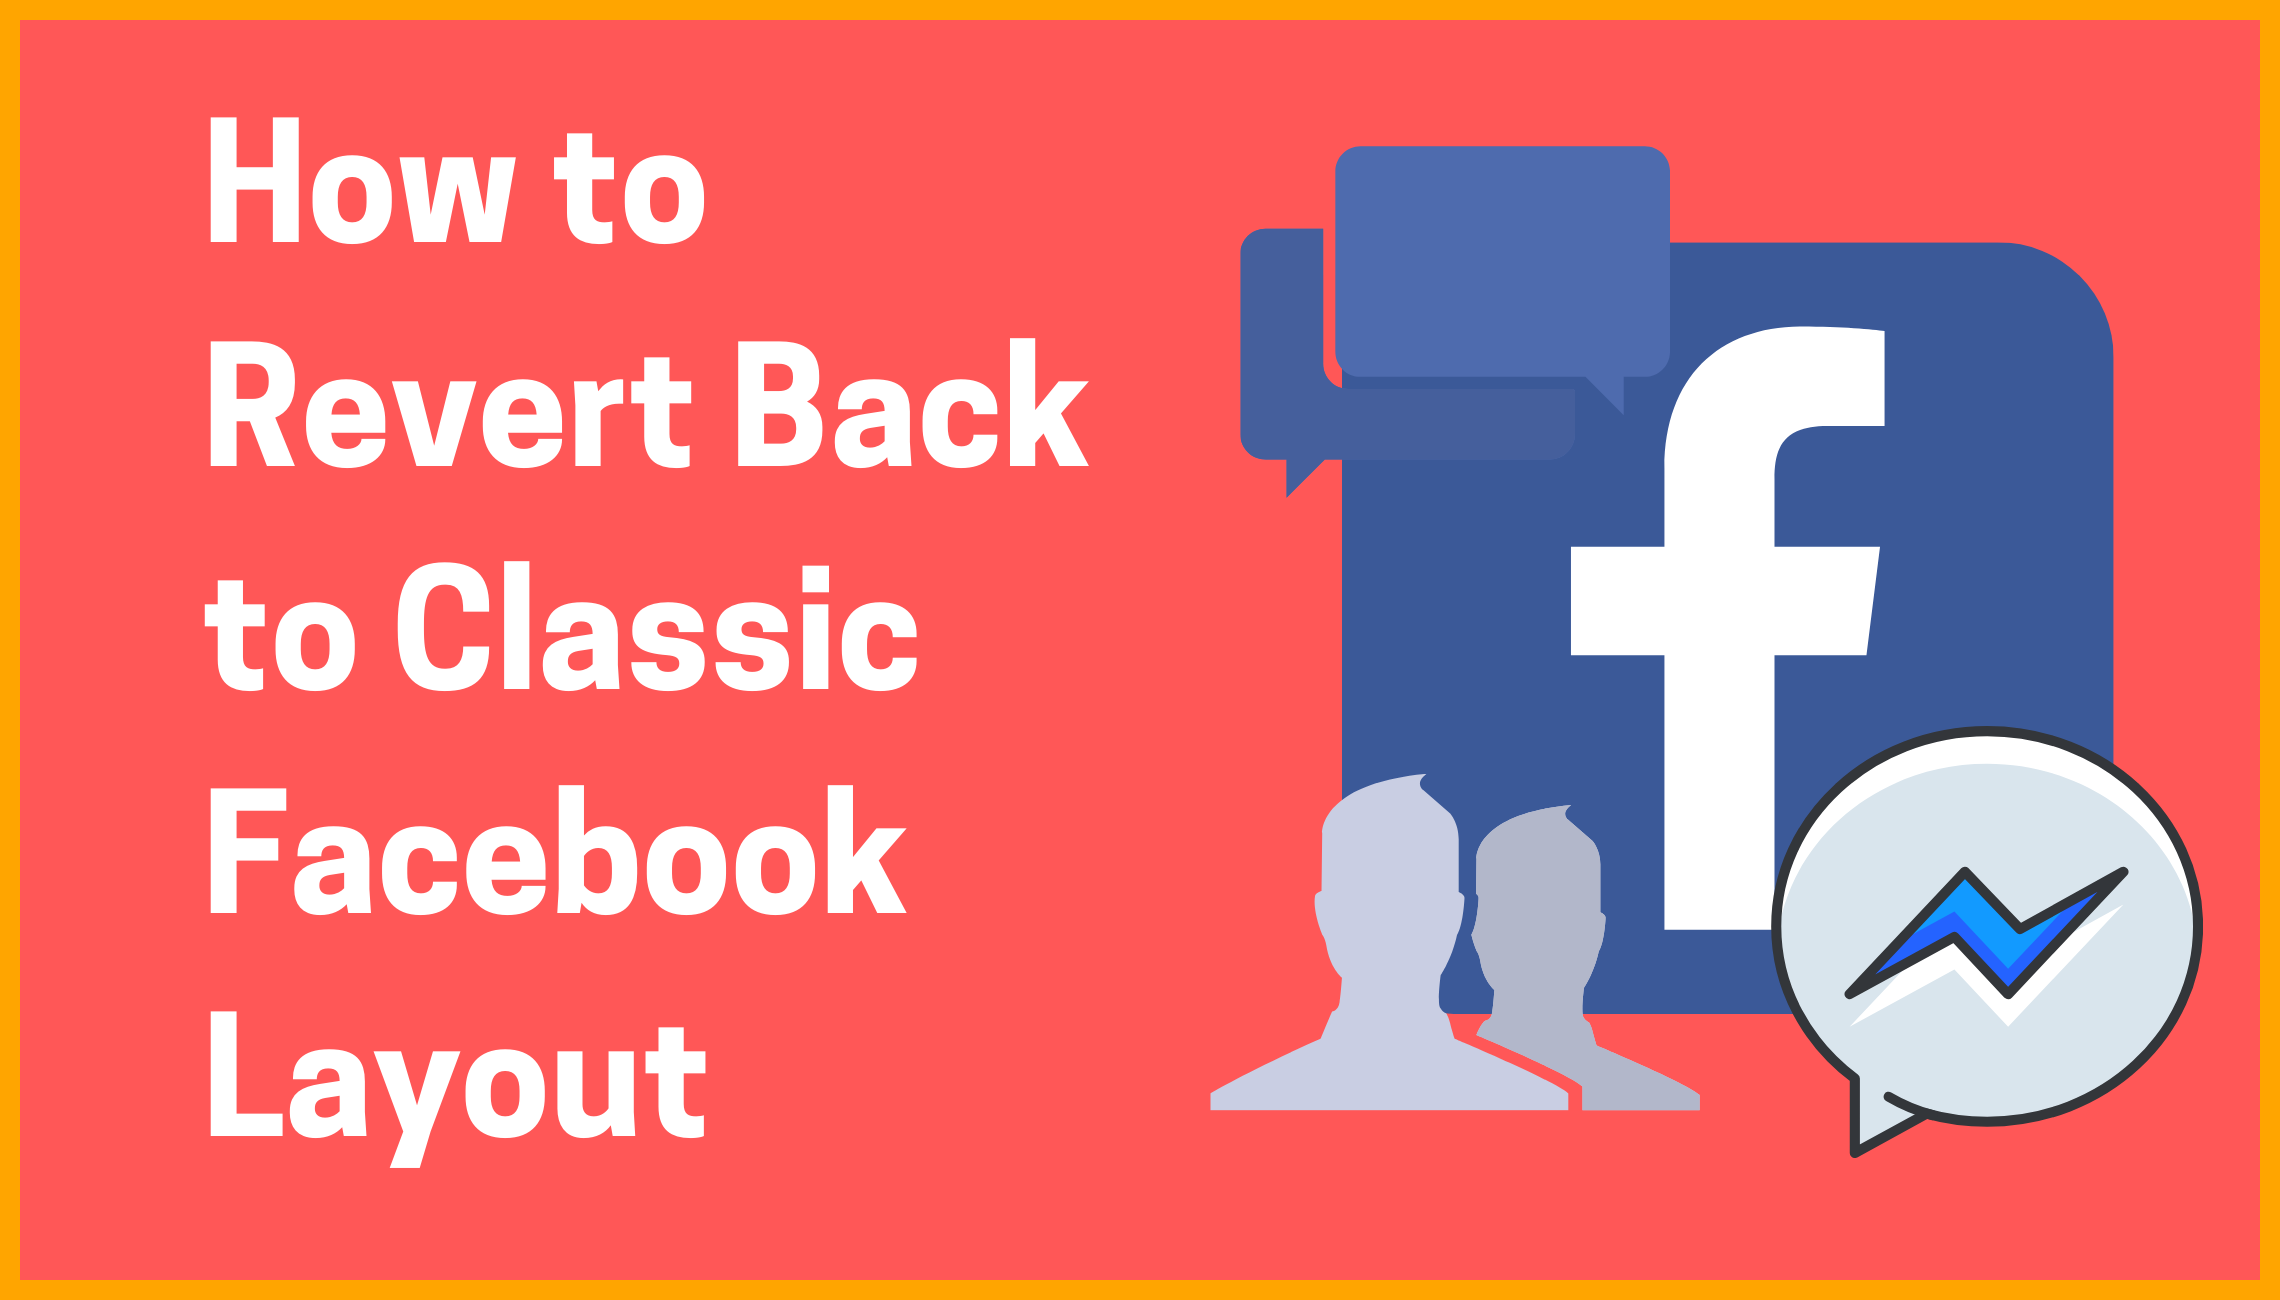 How to Revert Back to The Old Facebook Design